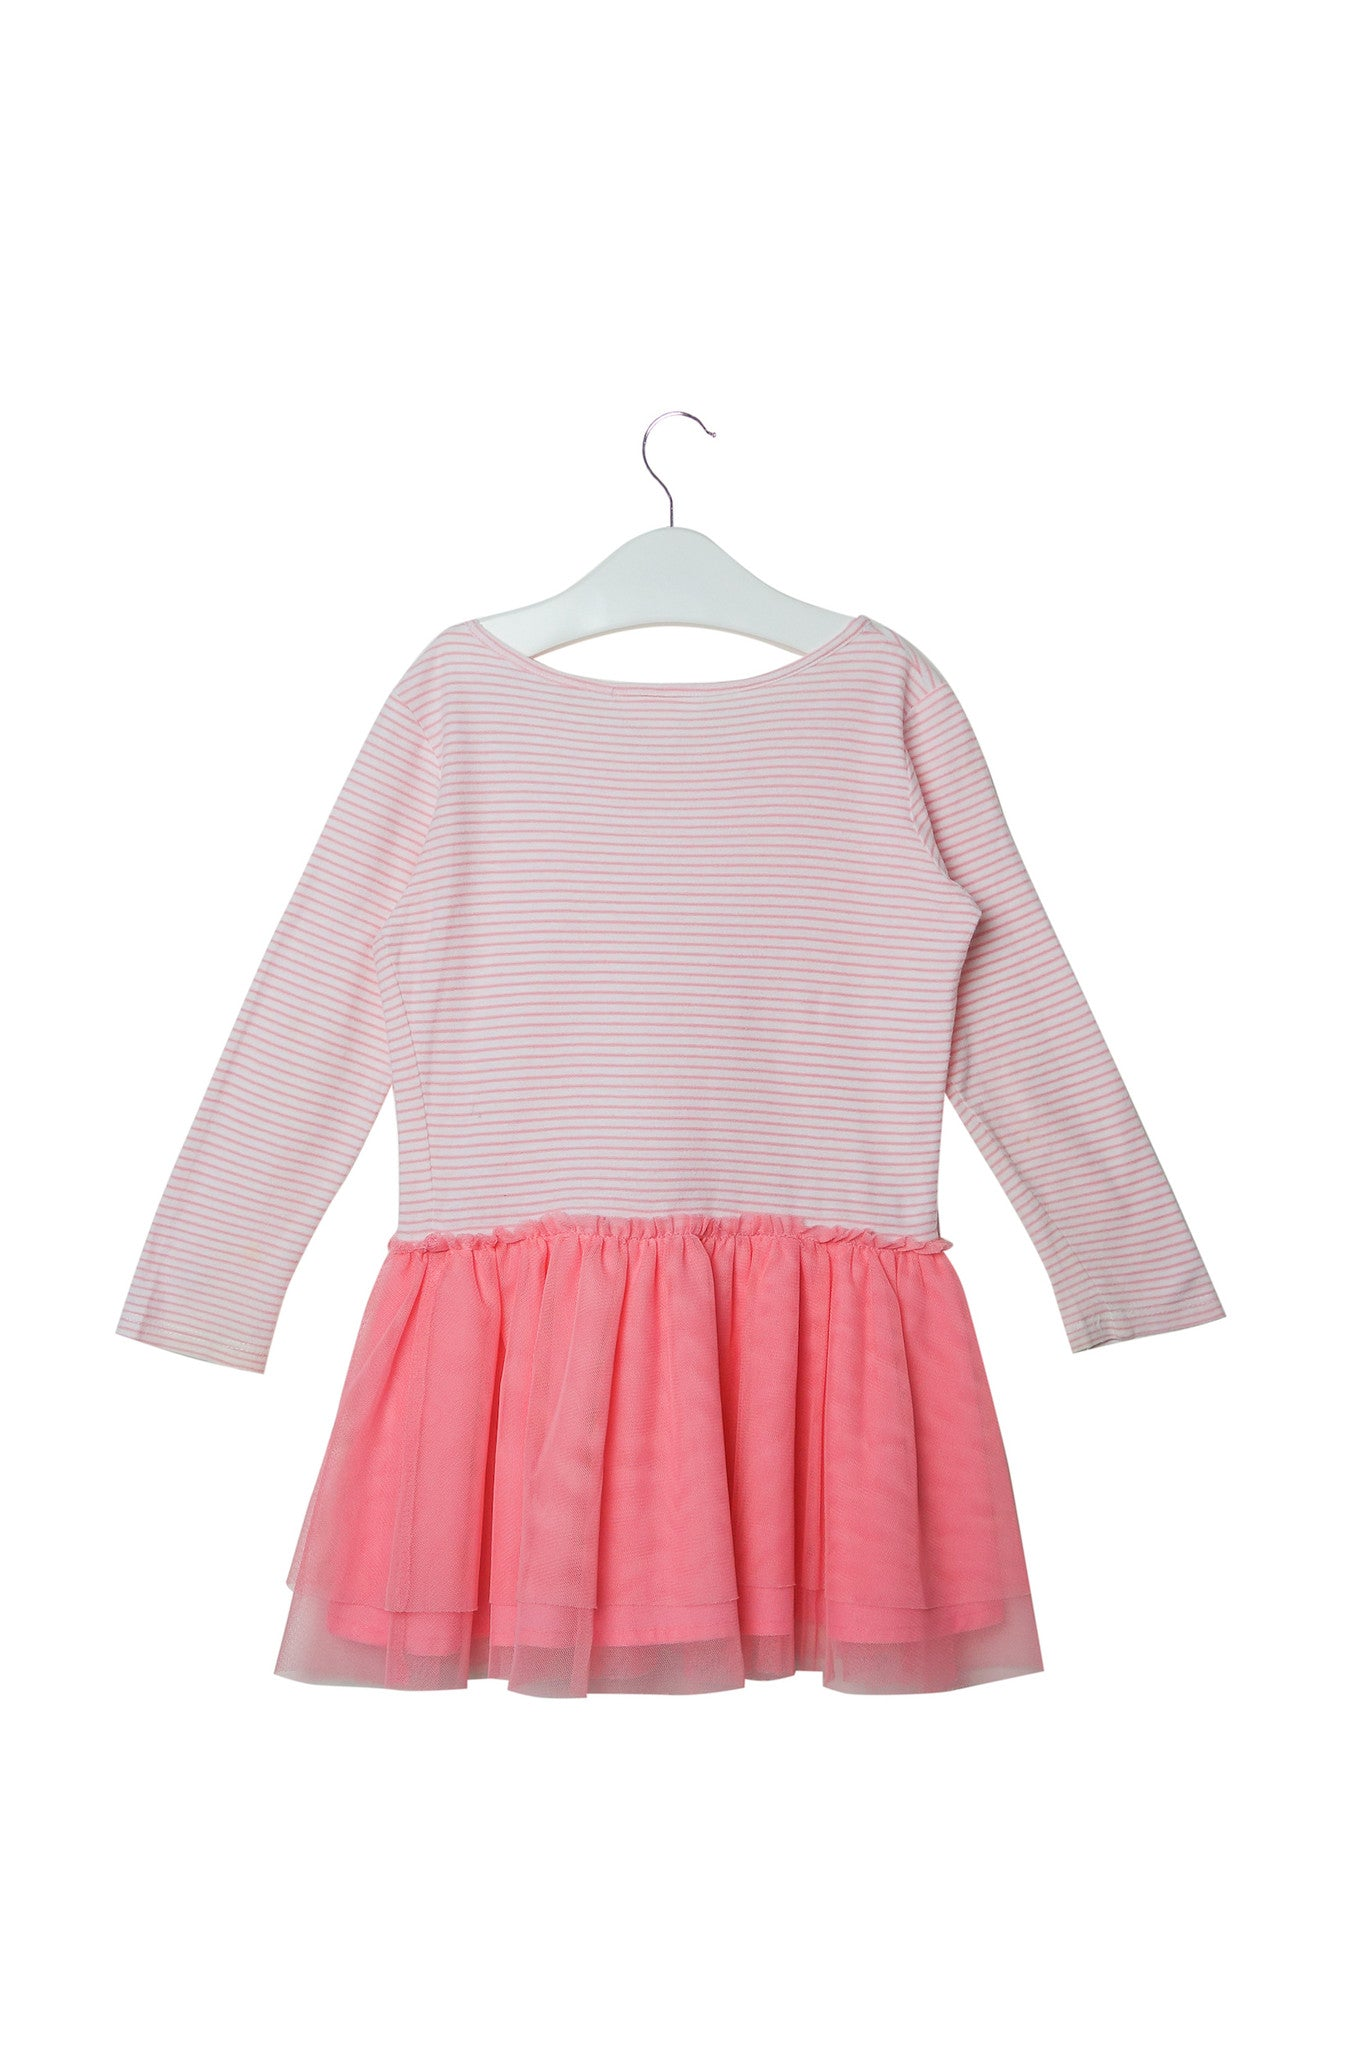 10002888 Seed Kids~Dress 2-3T at Retykle